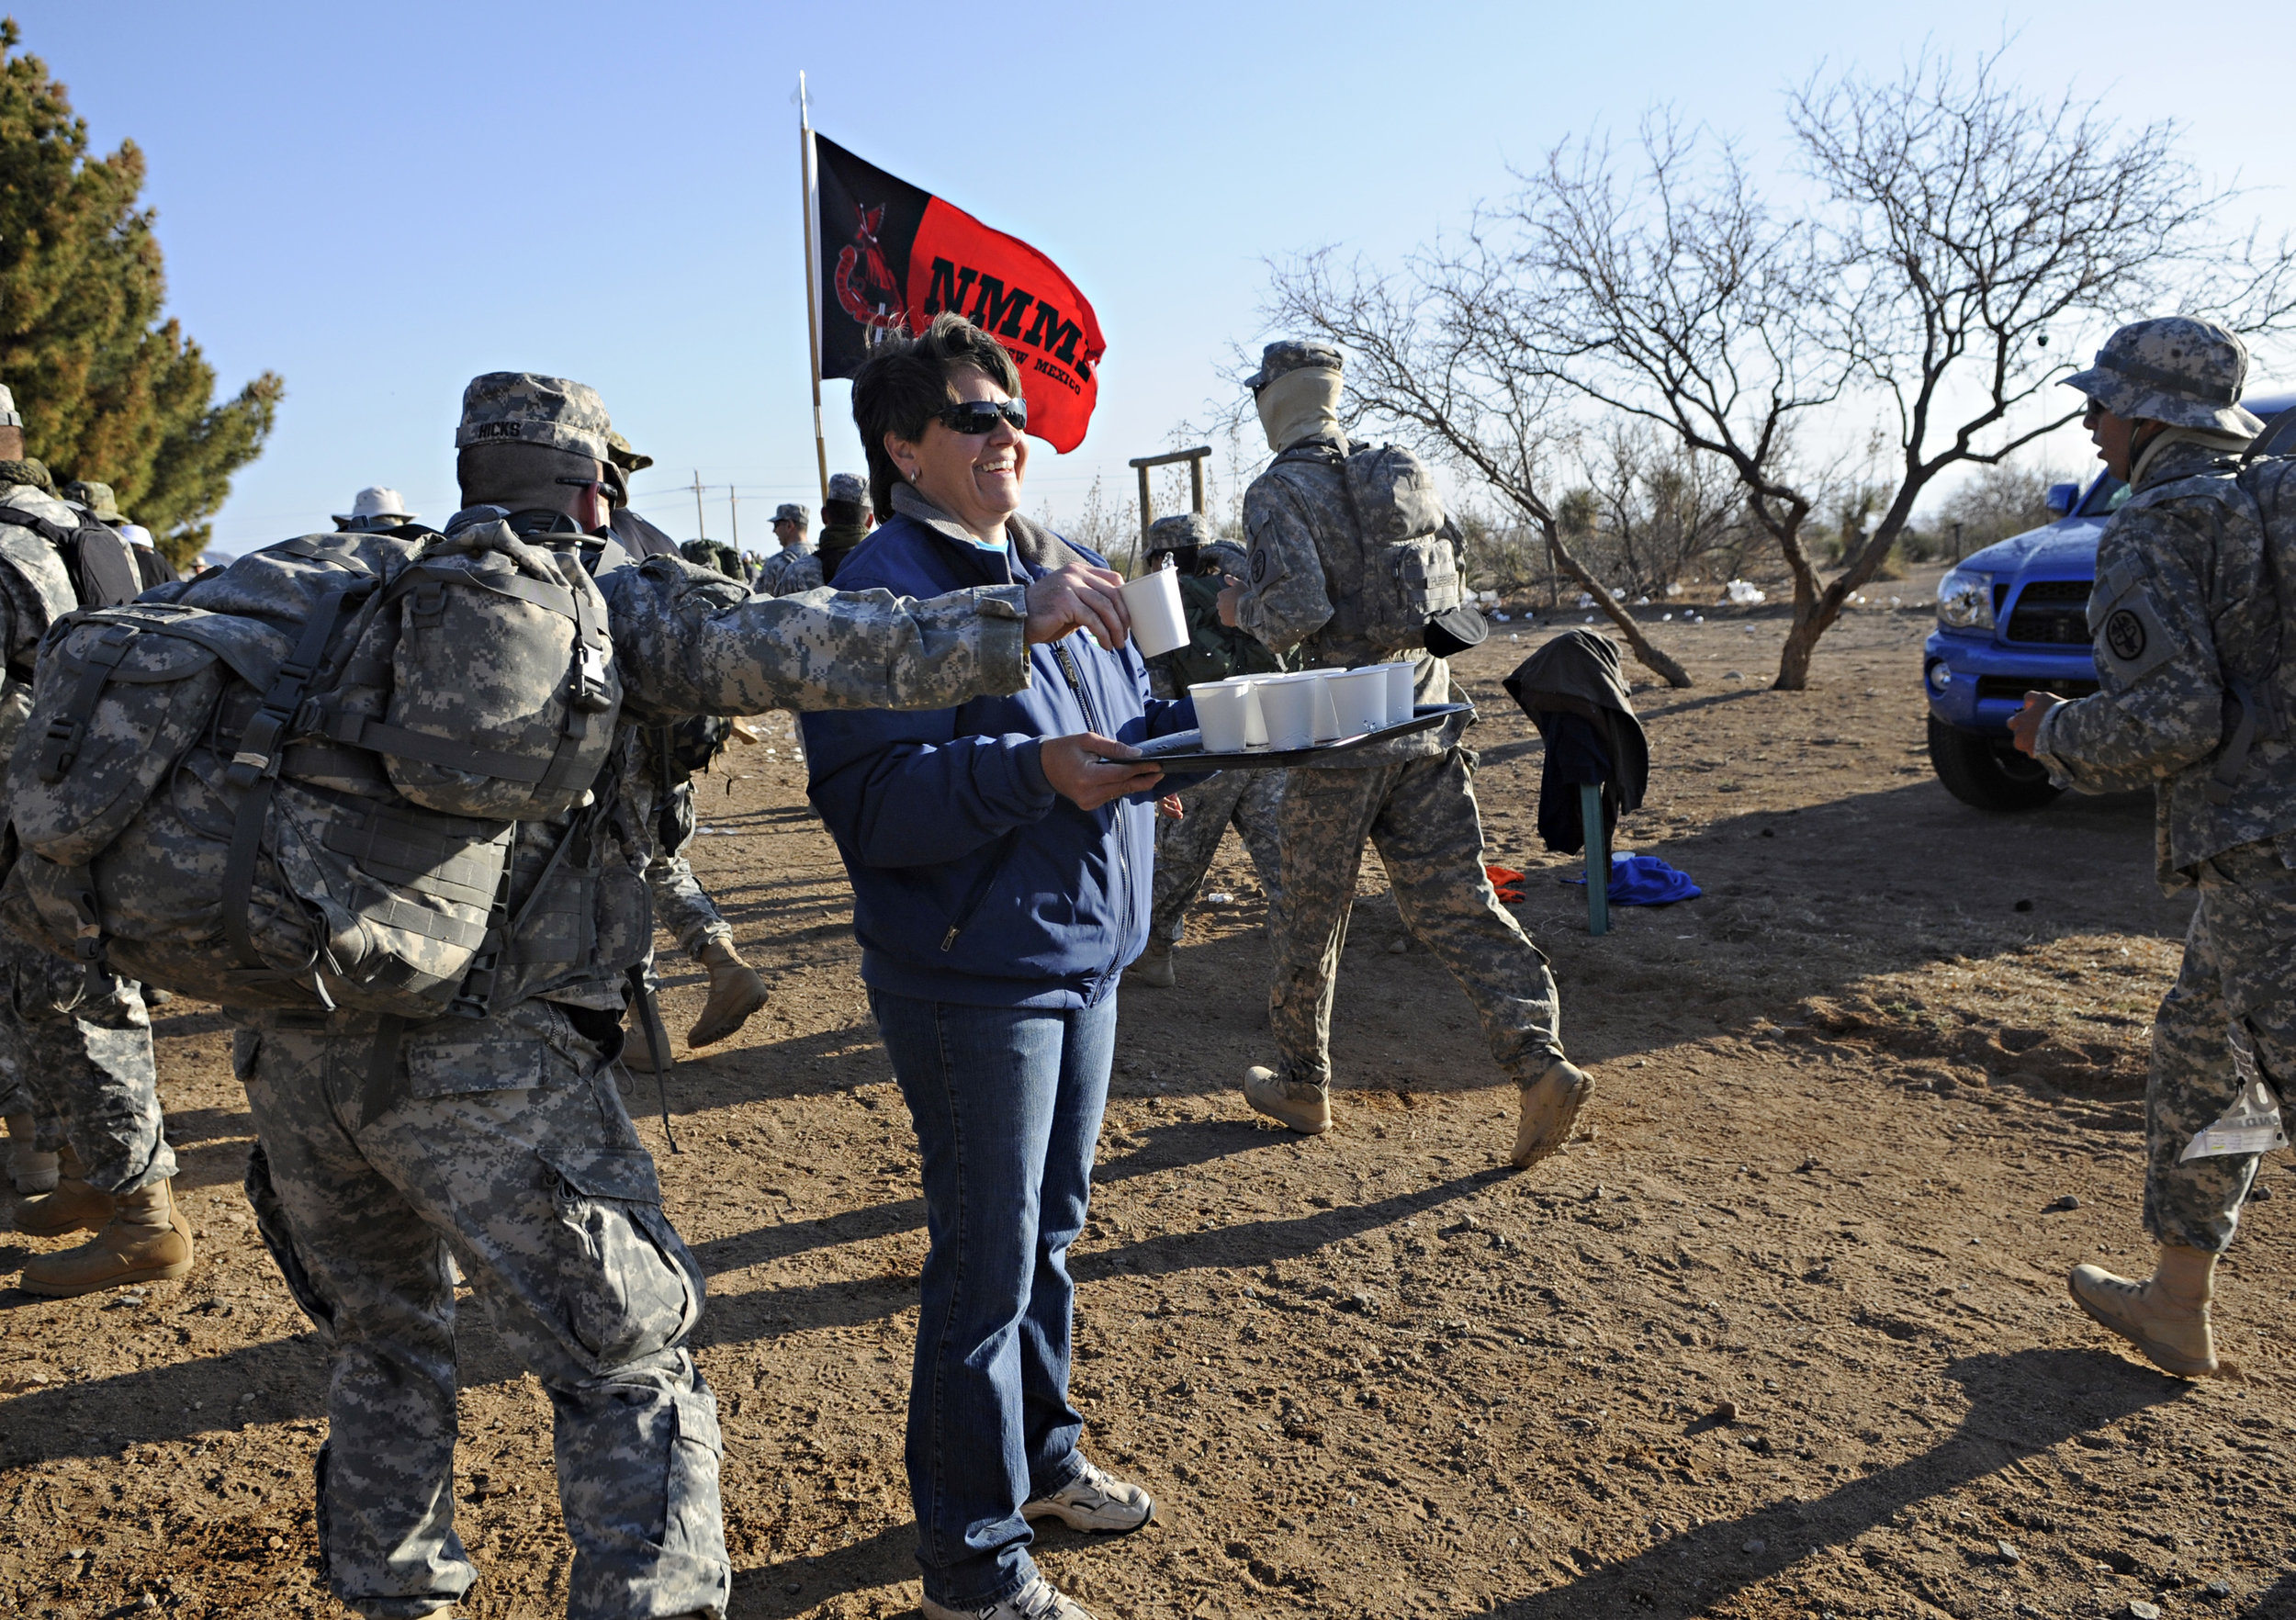 Volunteer Vicki Anderson, from Las Cruces, holds out water for the walkers and runners during the 22nd Annual Bataan Memorial Death March at White Sands Missile Range, Sunday, March 27, 2011. (Morgan Petroski/Albuquerque Journal)